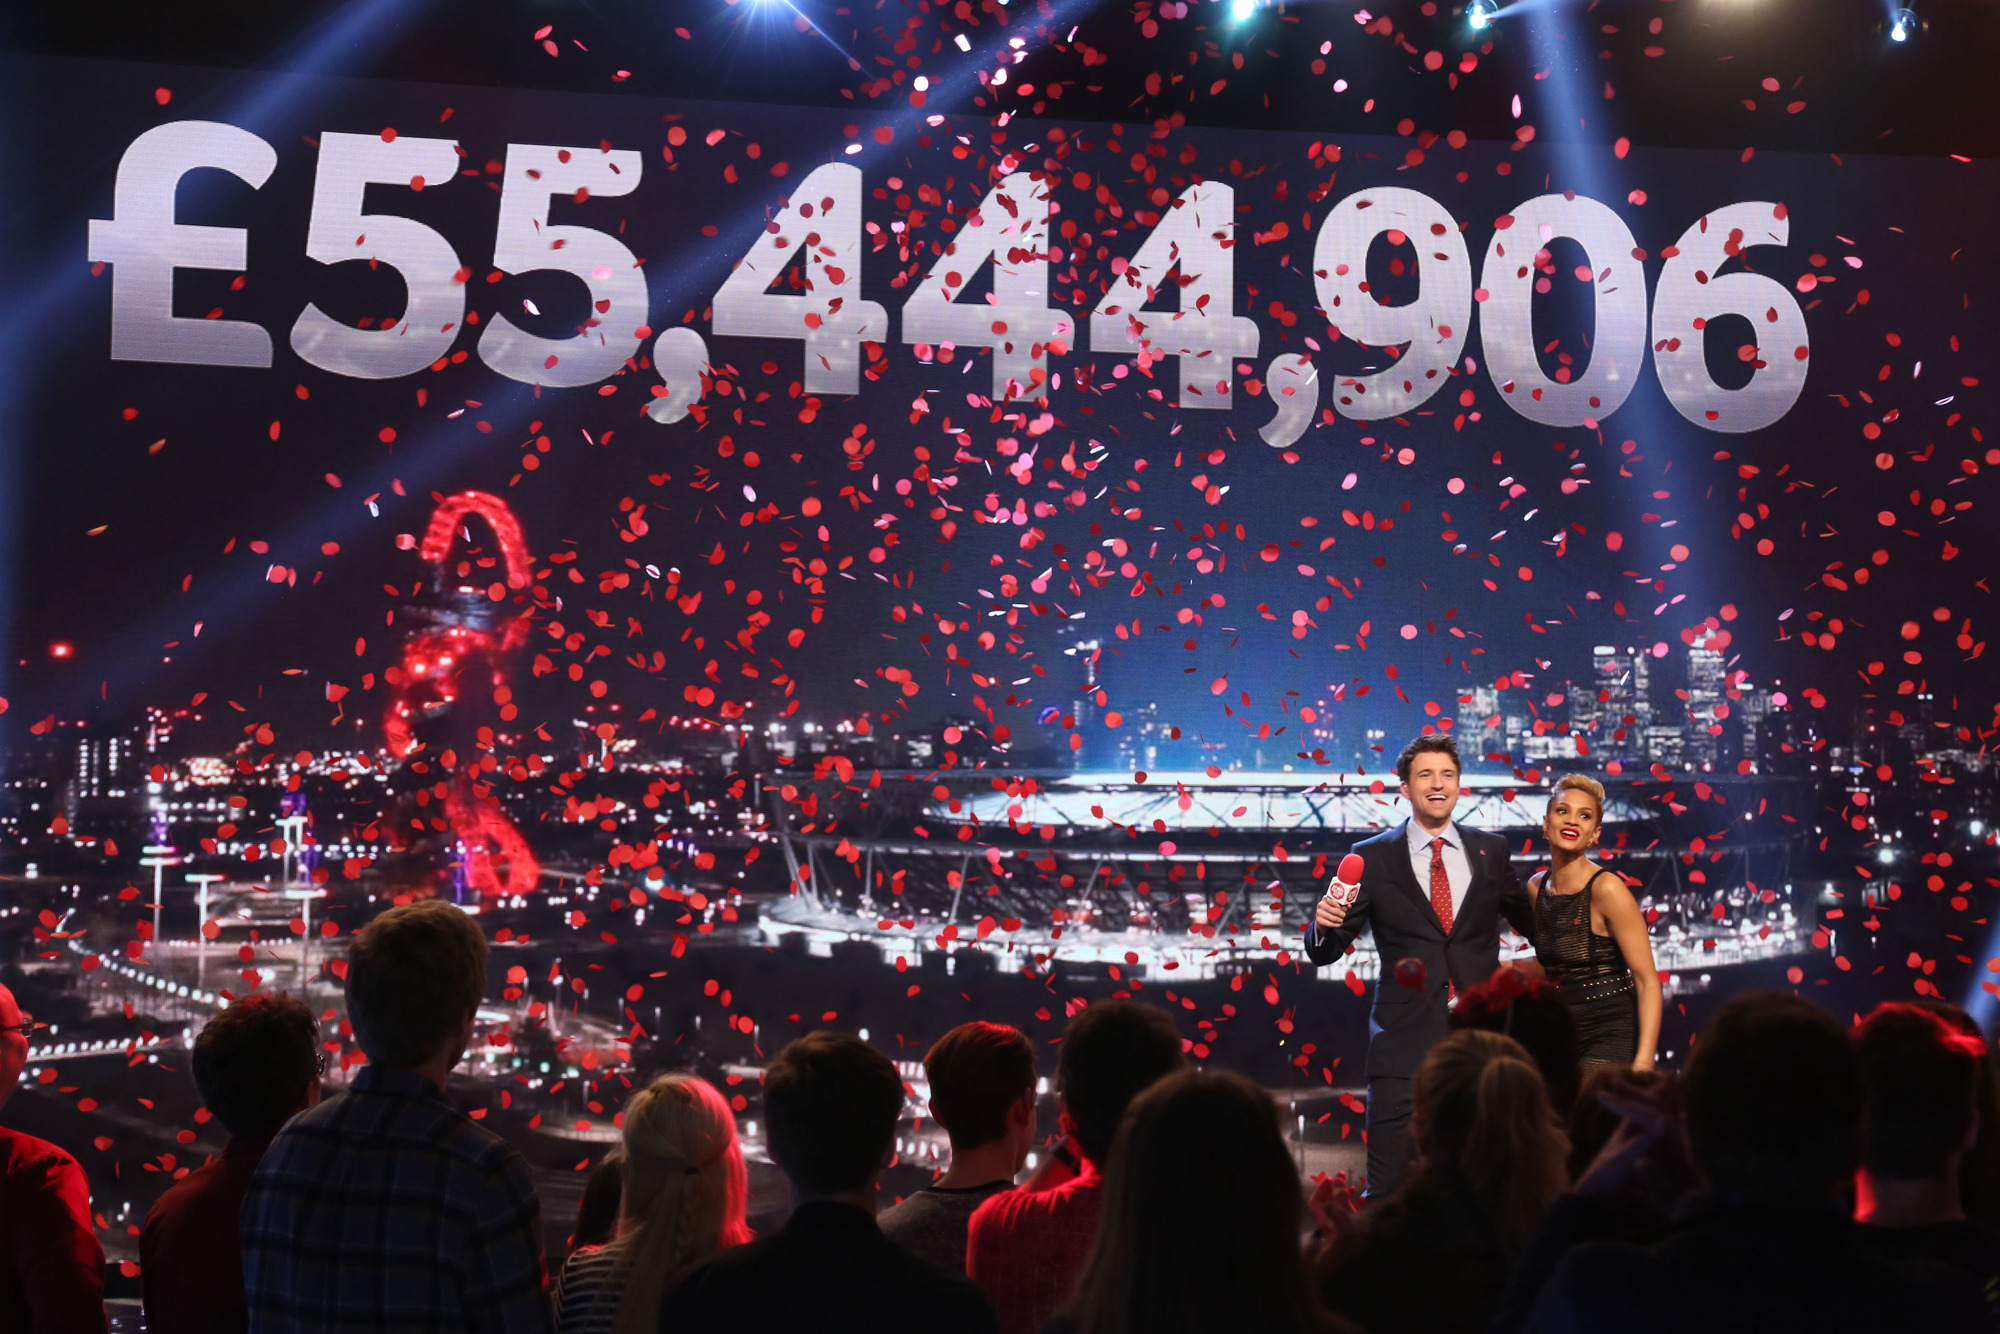 Sport Relief 2016 rounds off the night with a record-breaking £55m raised